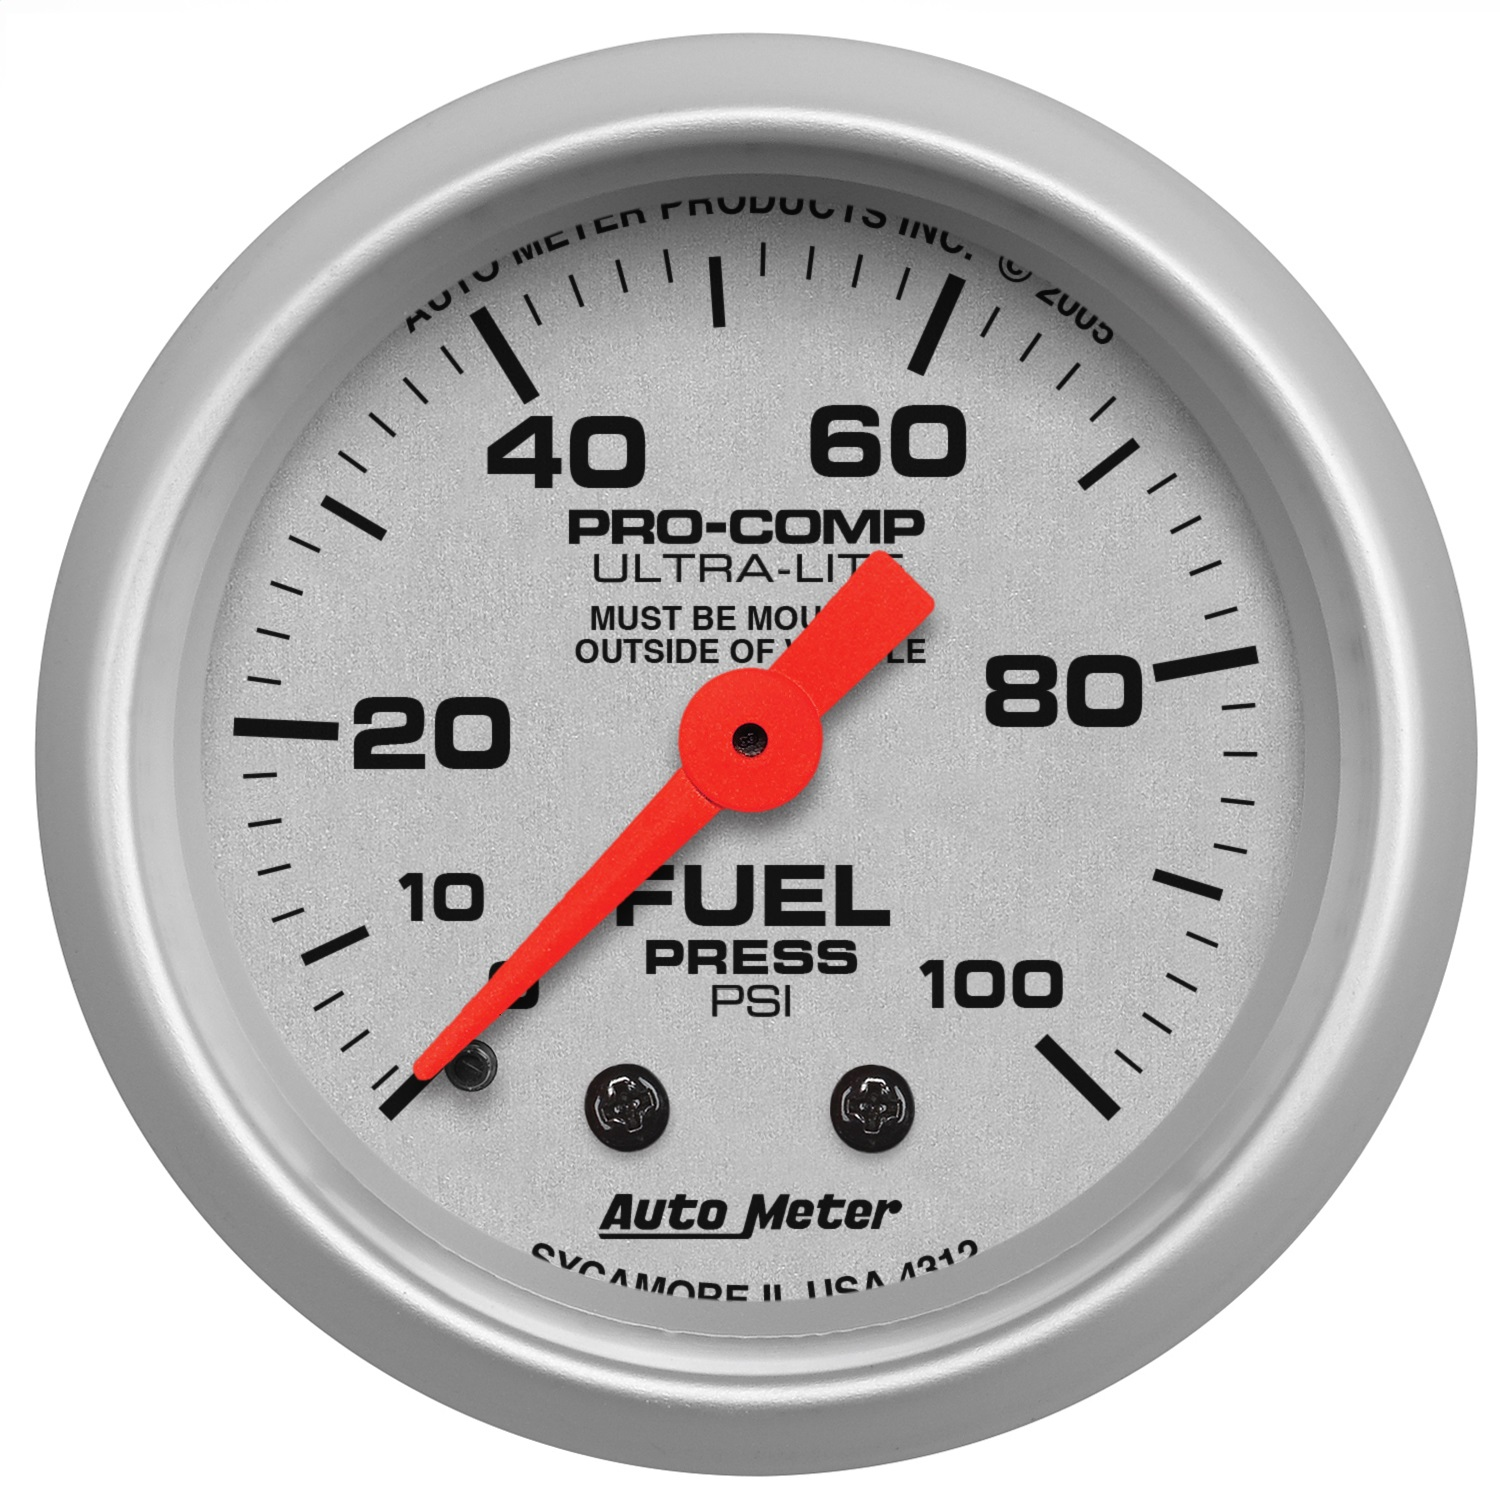 Autometer 4368 Ultra Lite Electric Water Pressure Gauge: AutoMeter 4312 Ultra-Lite Mechanical Fuel Pressure Gauge